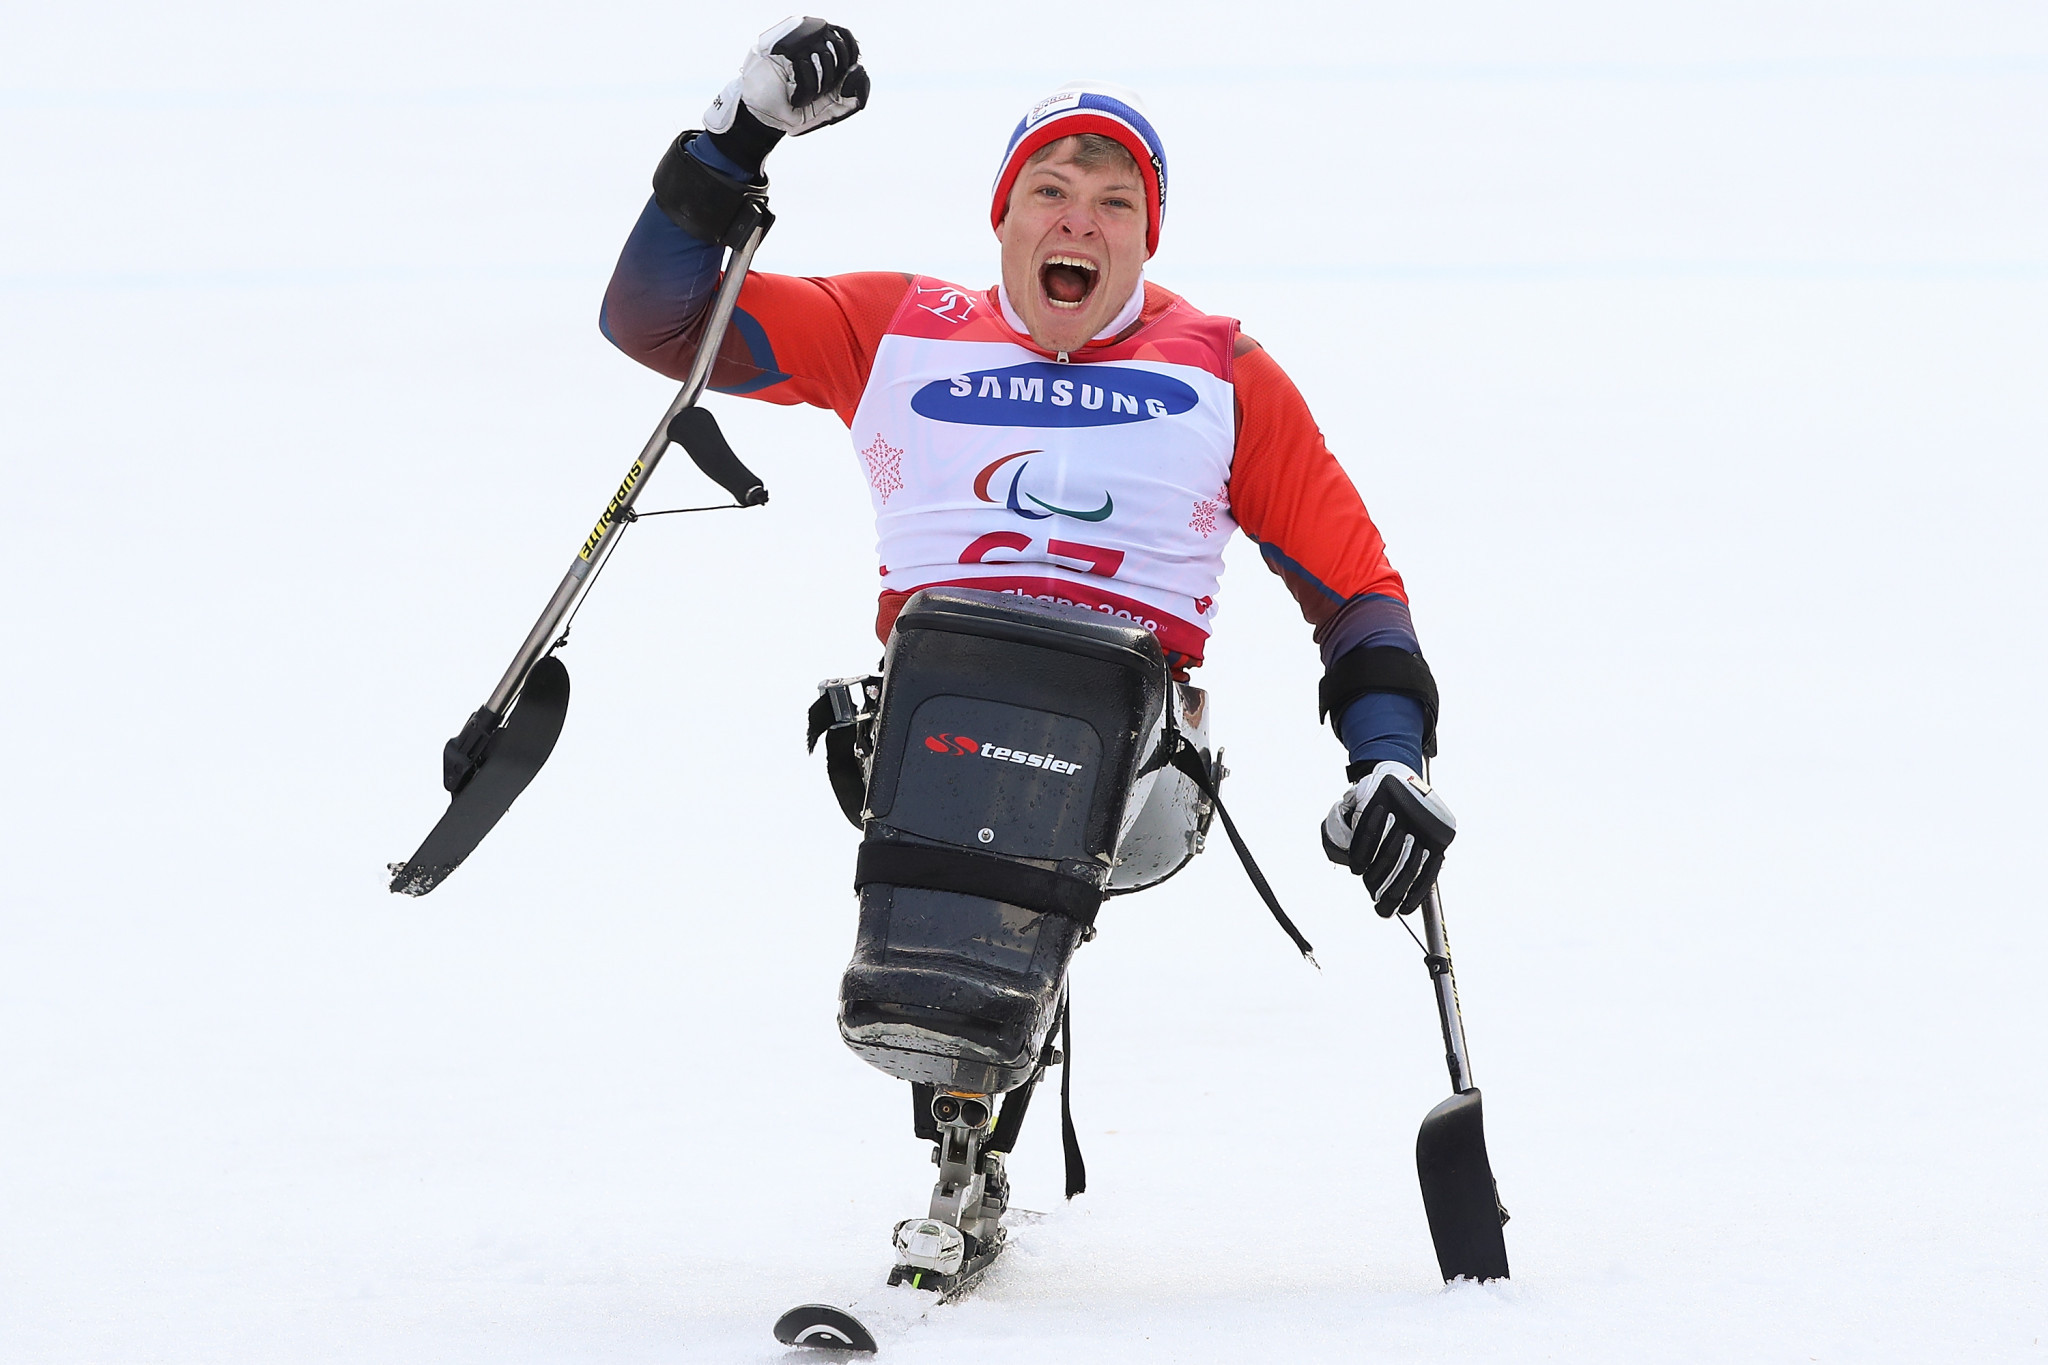 Norway's Jesper Pedersen matched the feat of three consecutive victories achieved by Italy's Giacomo Bertagnolli at the World Para Skiiing World Cup in Prato Nevoso ©Getty Images